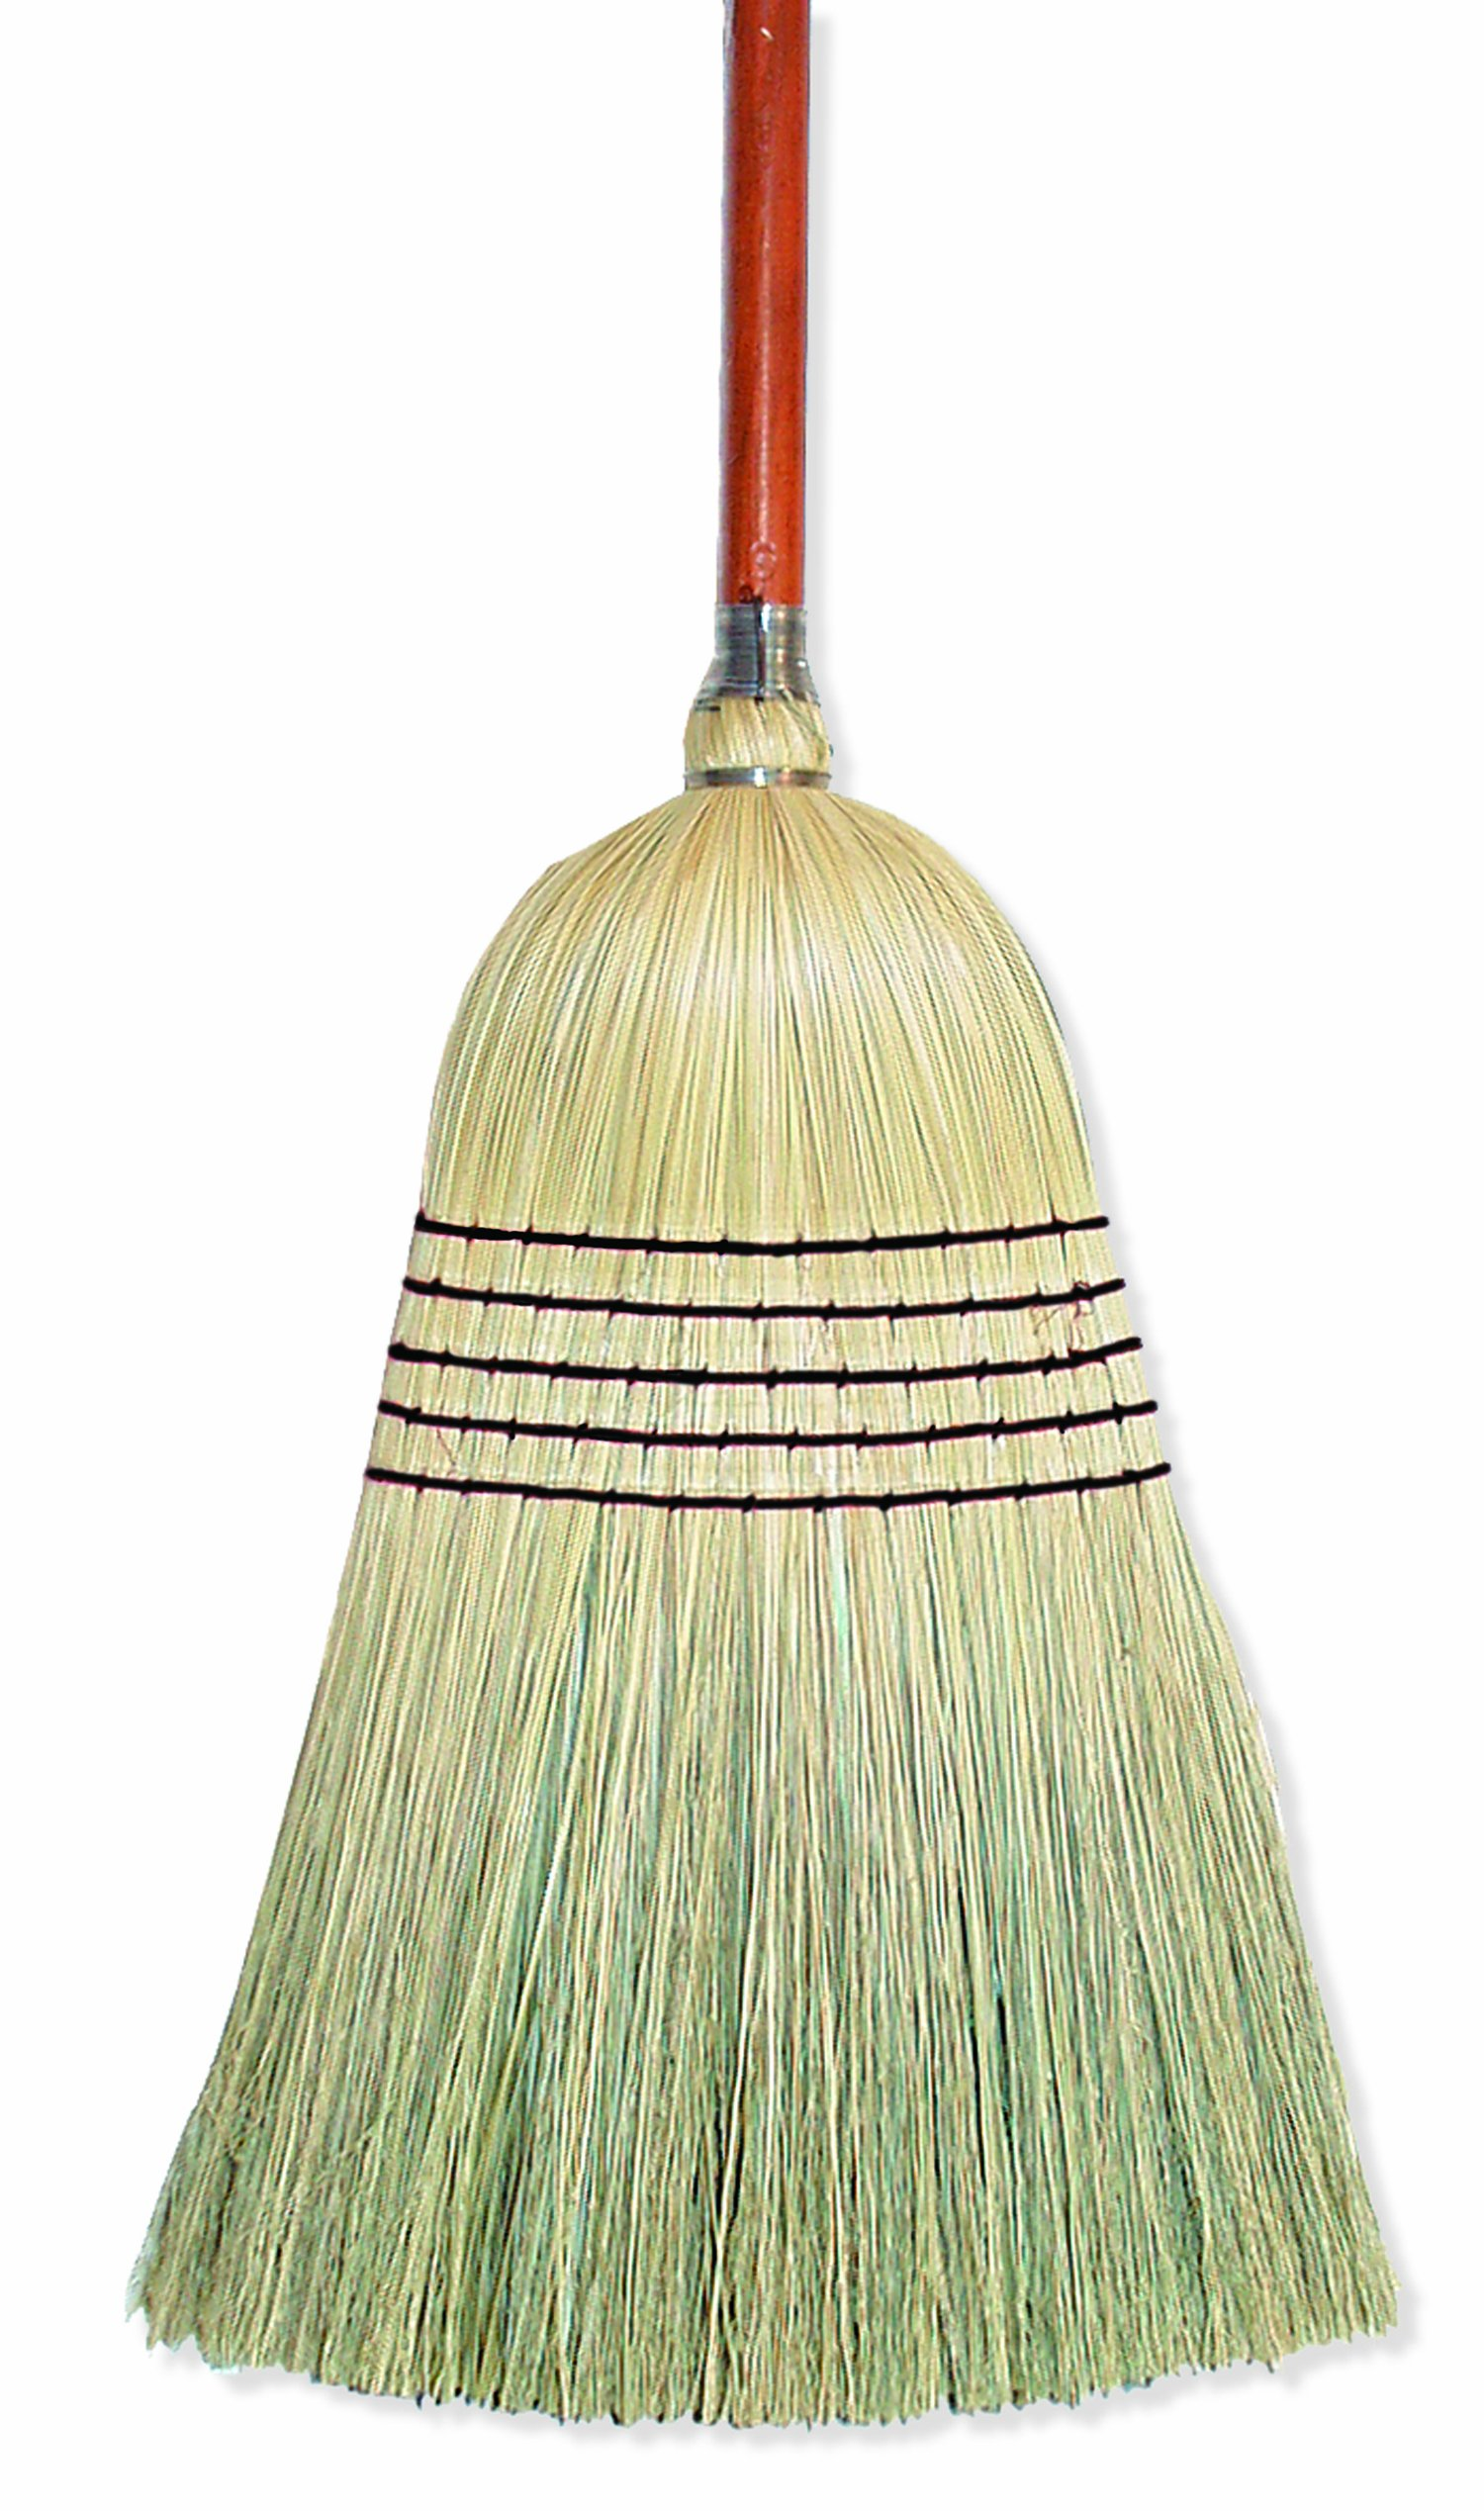 Wilen E502036, Warehouse Corn Blend Broom with 1-1/8'' Handle, 32# Size, 56'' Length (Case of 6)